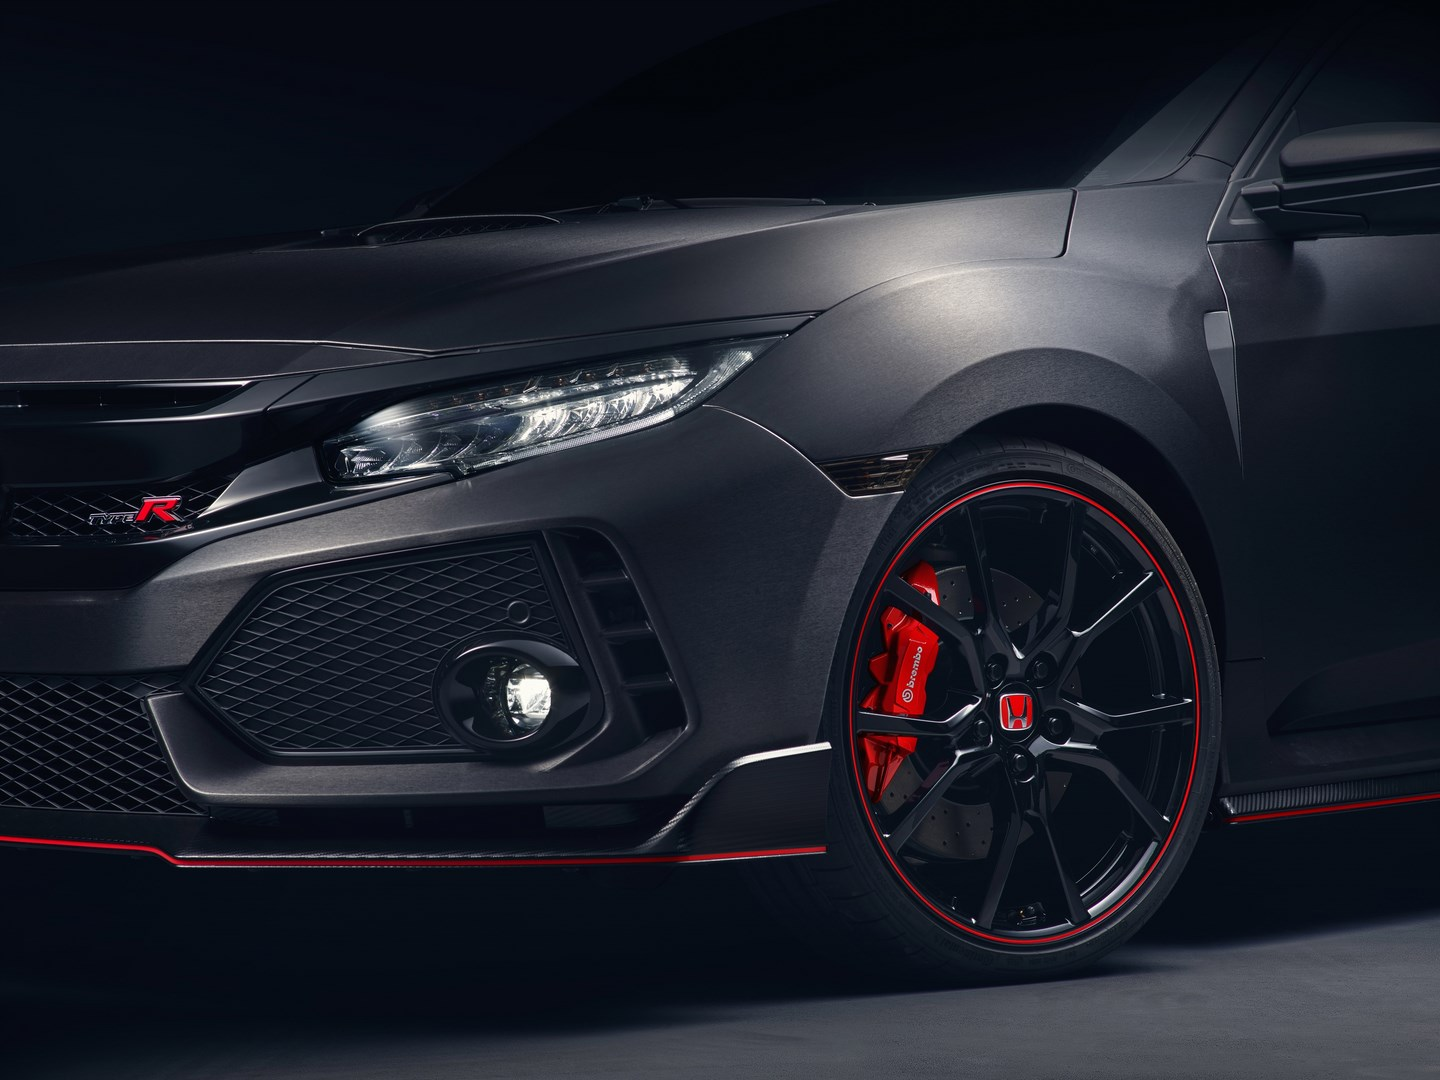 New Civic Type R Prototype breaks cover in Paris